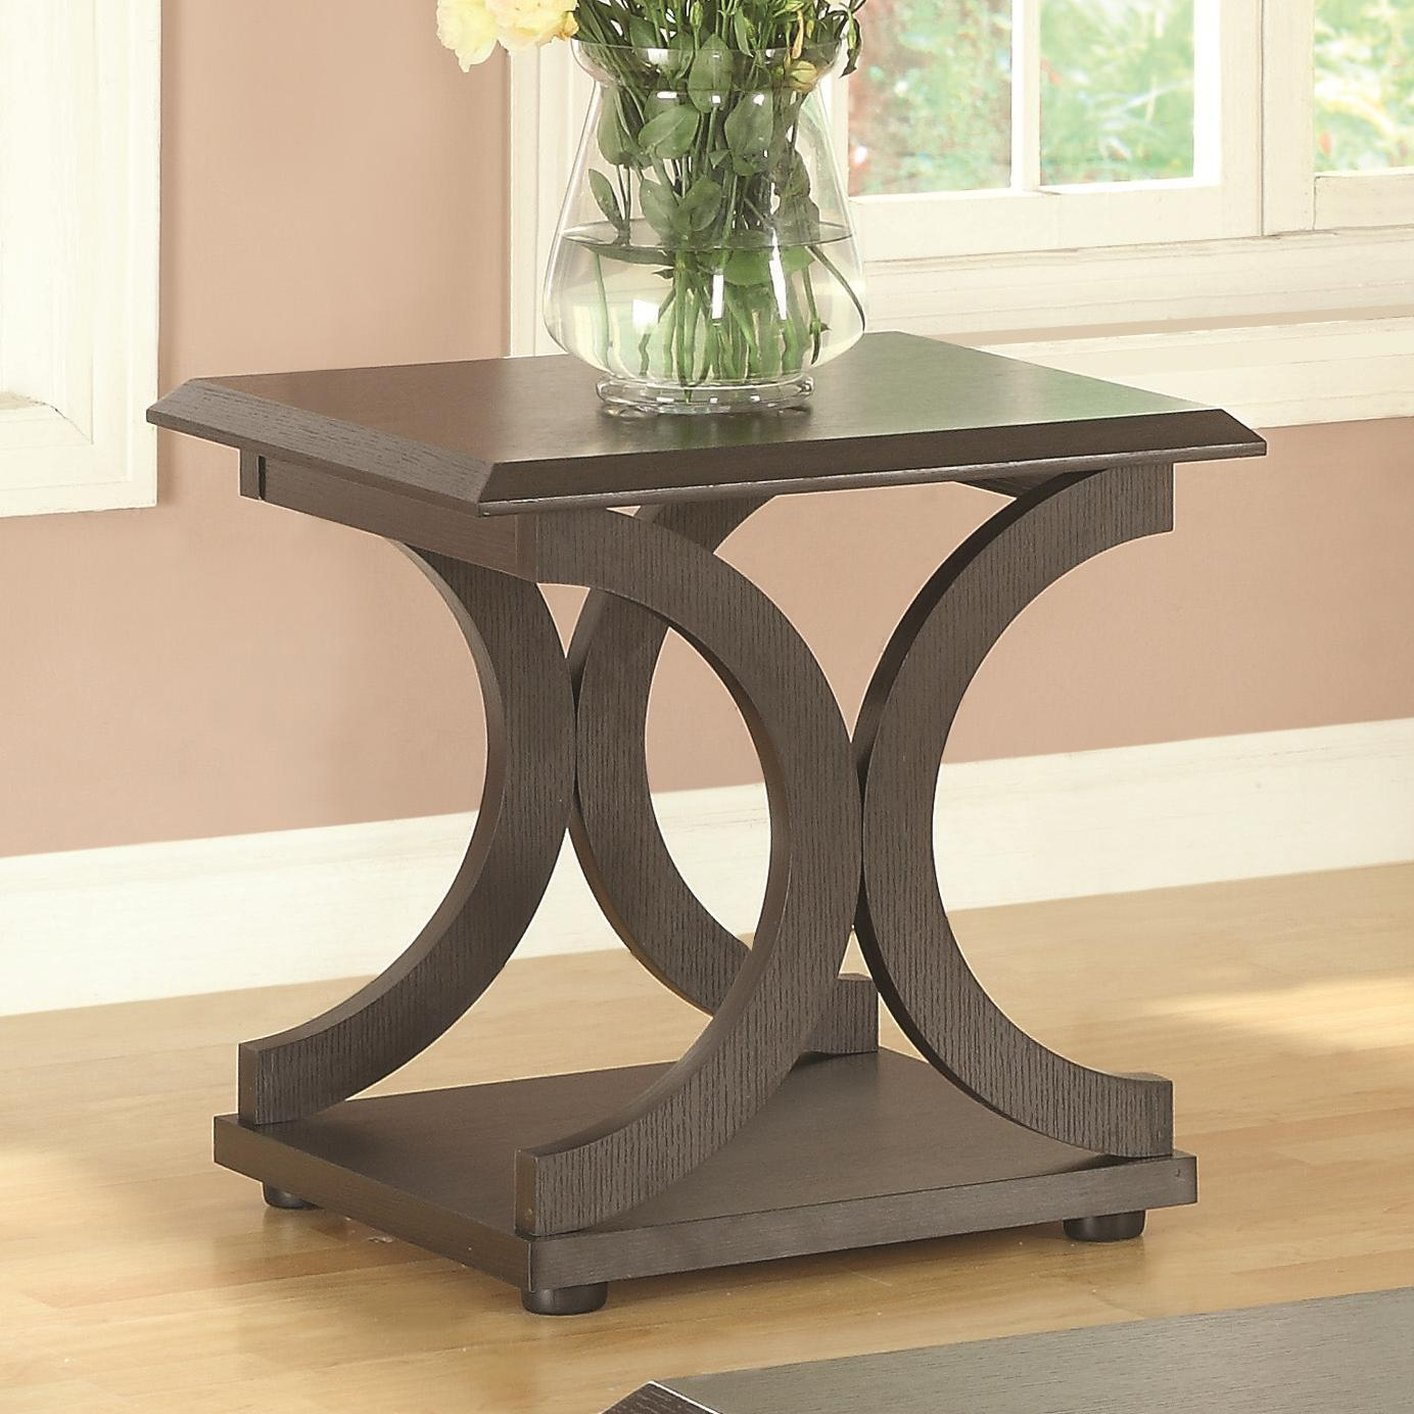 Brown wood end table steal a sofa furniture outlet los angeles ca